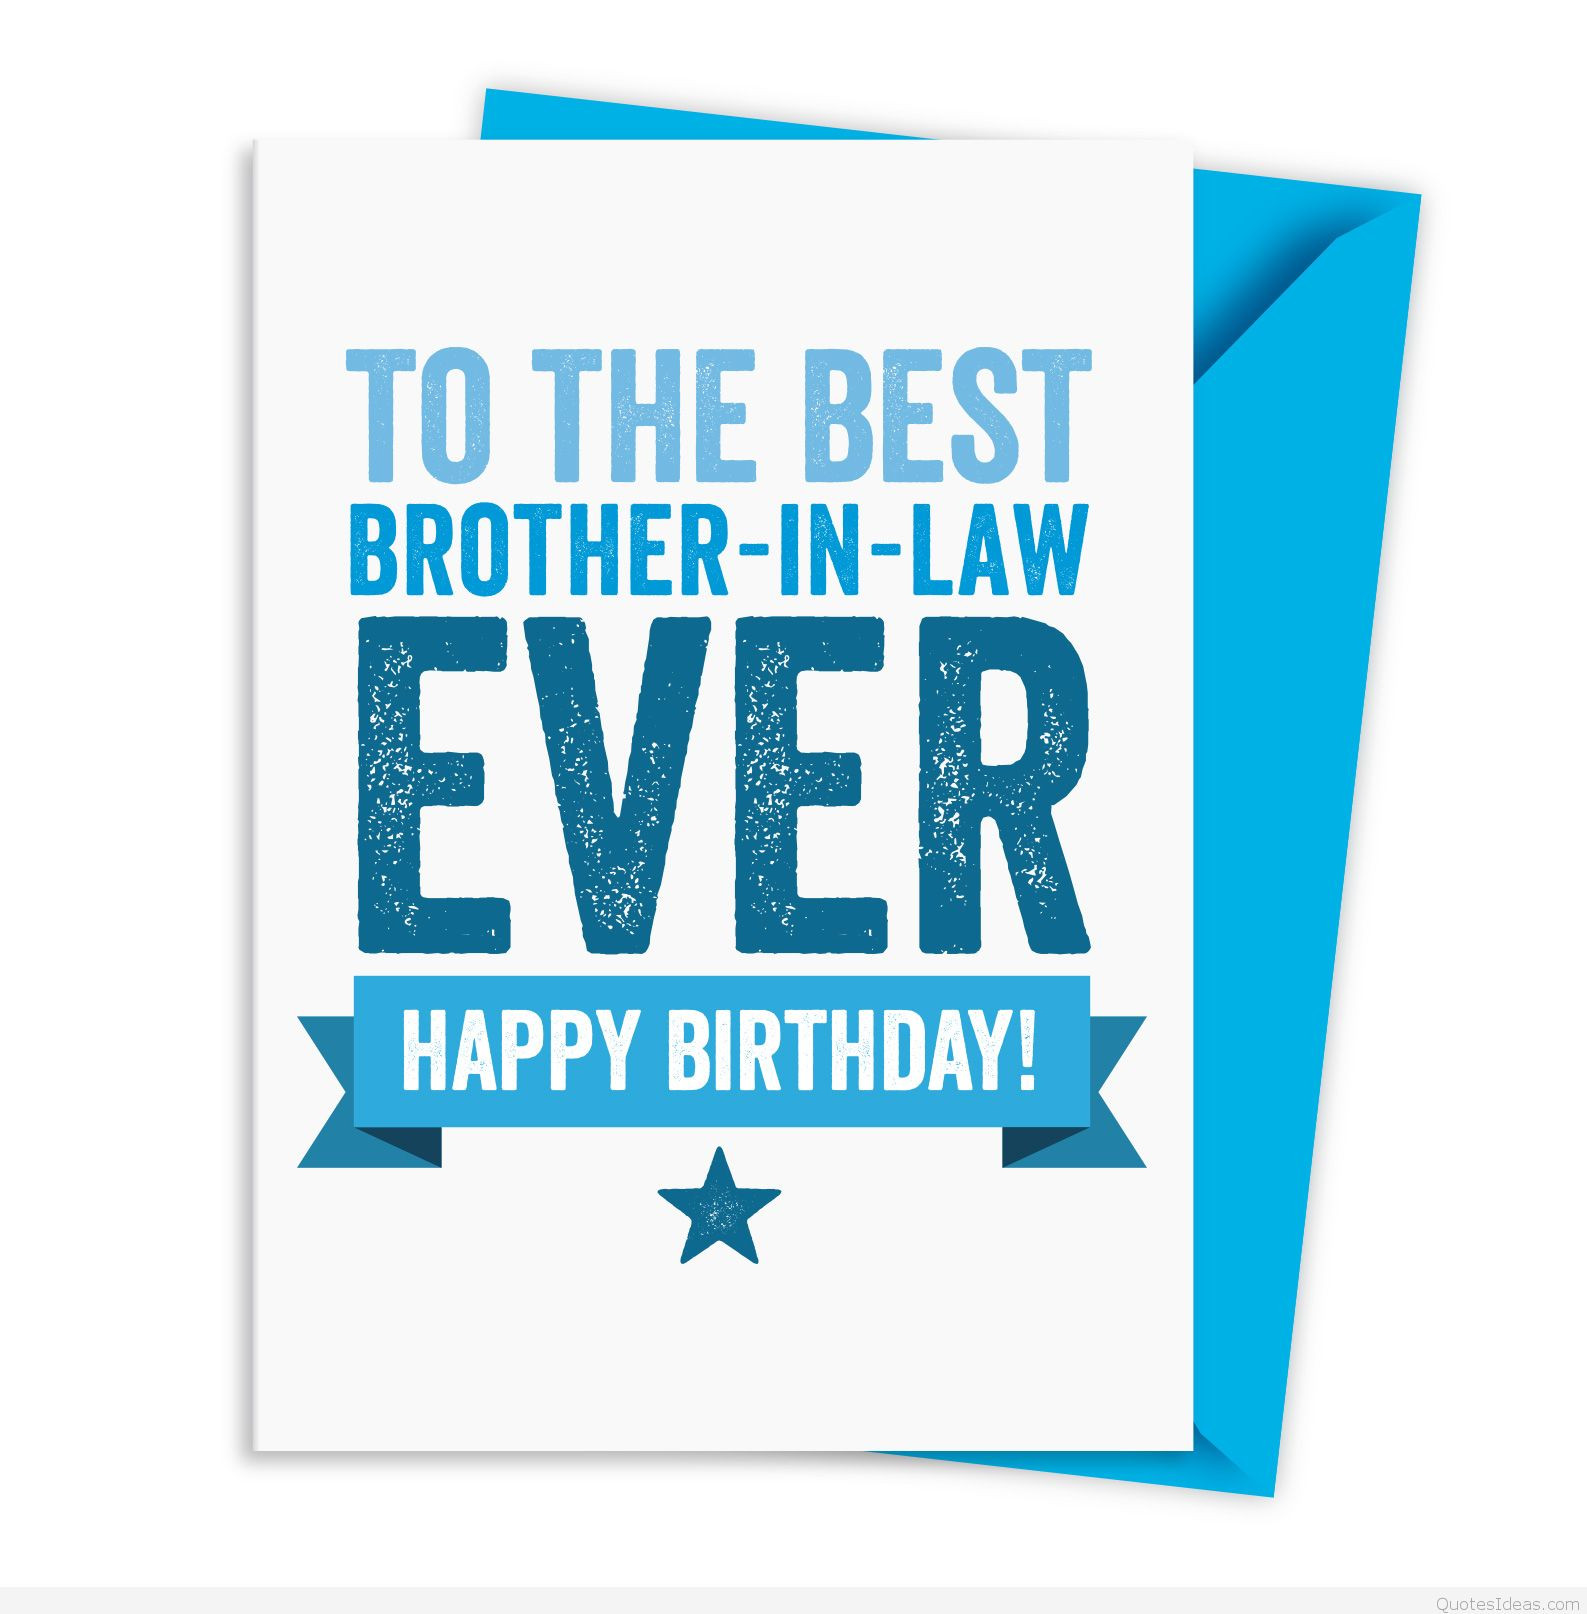 Best ideas about Birthday Quotes For Brother In Law . Save or Pin Happy birthday brothers in law quotes cards sayings Now.